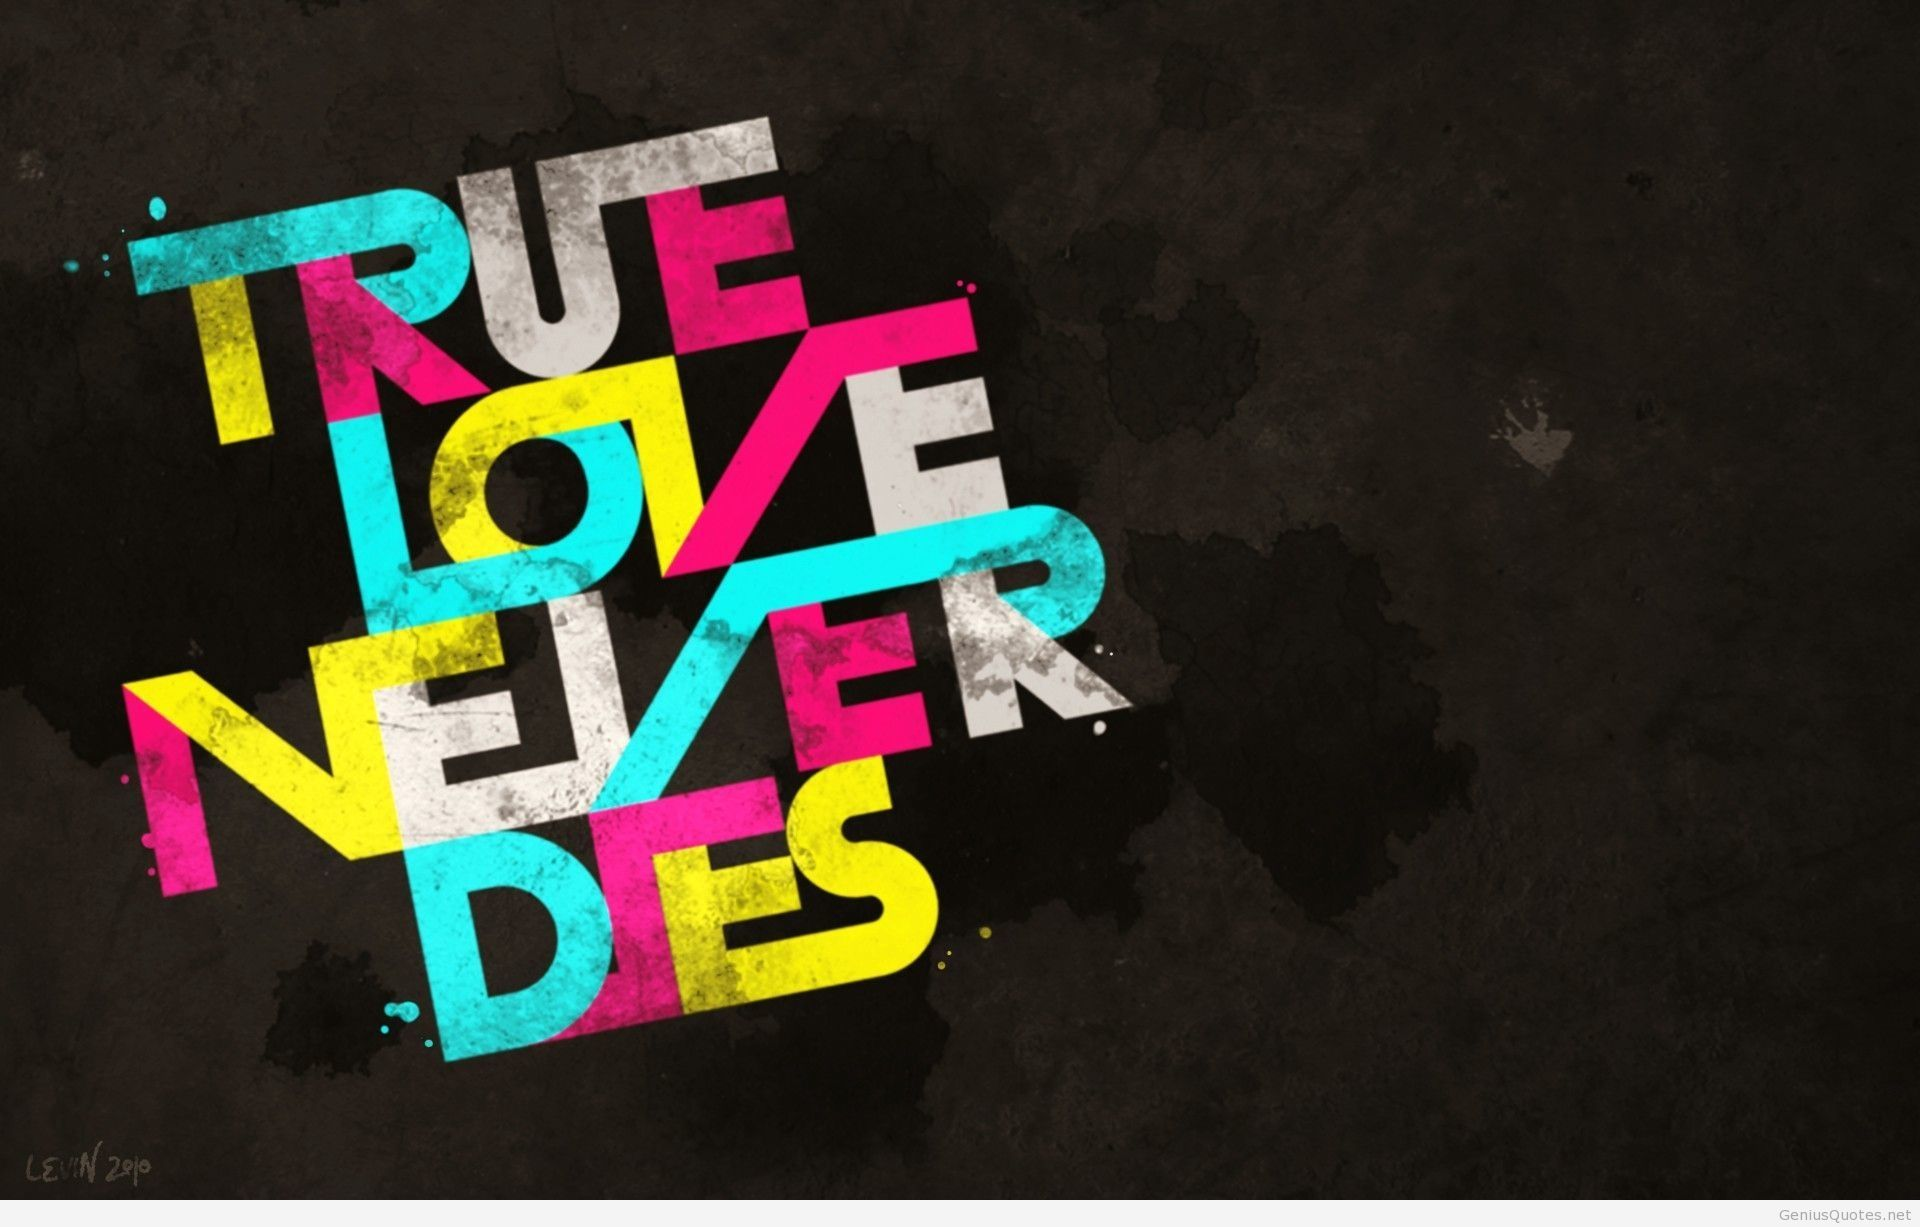 Download Wallpaper Of True Love Hd HD